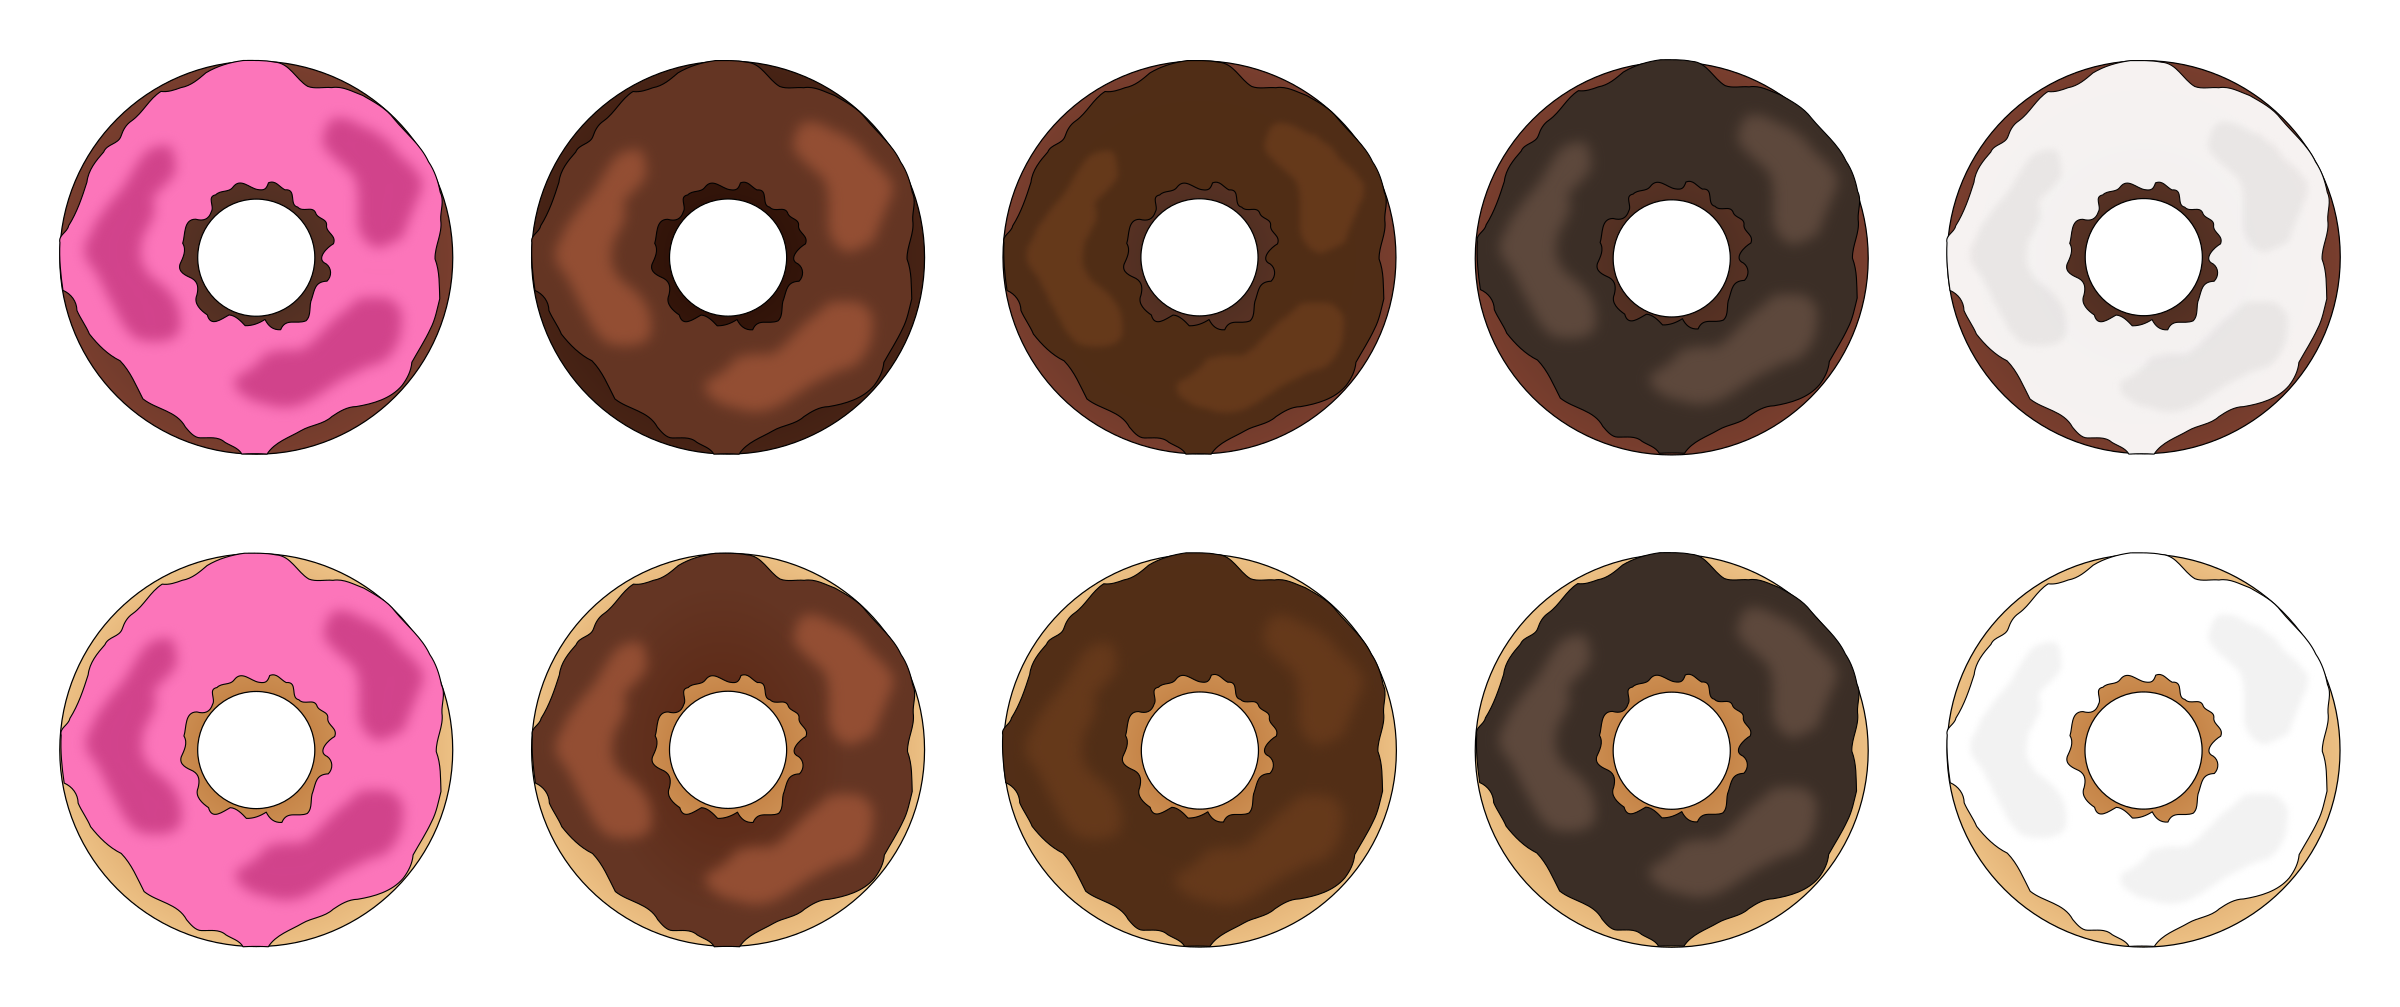 Assorted Plain Frosted Donuts by PinkJellyfish